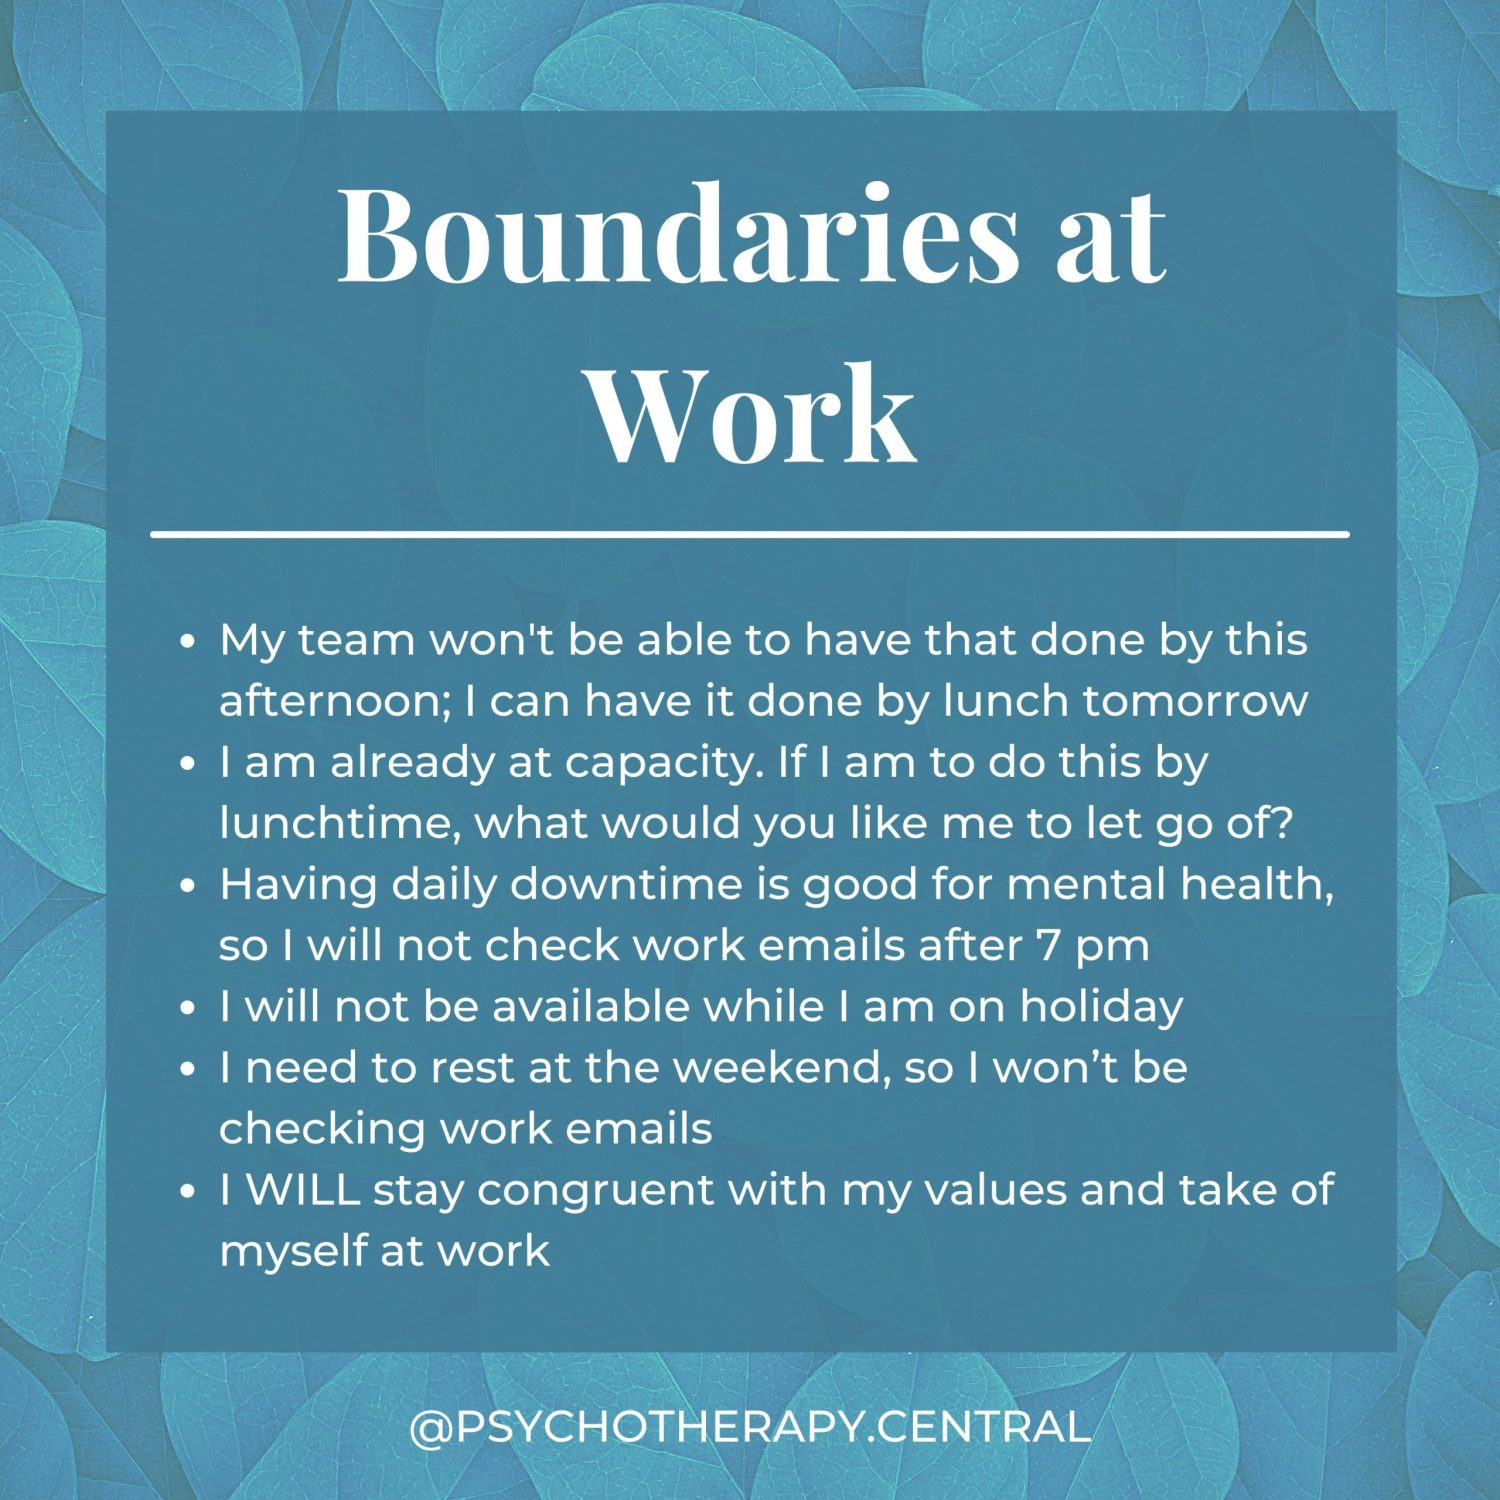 Boundaries at Work My team won't have that done by this afternoon; I can have it done by lunch tomorrow. I am already at capacity. If I am to do this by lunchtime, what would you like me to let go of? Having daily downtime is good for mental health, so I will not check work emails after 7 pm I will not be available while I am on holiday I need to rest on the weekend, so I won't be checking work emails. I WILL stay congruent with my values at work